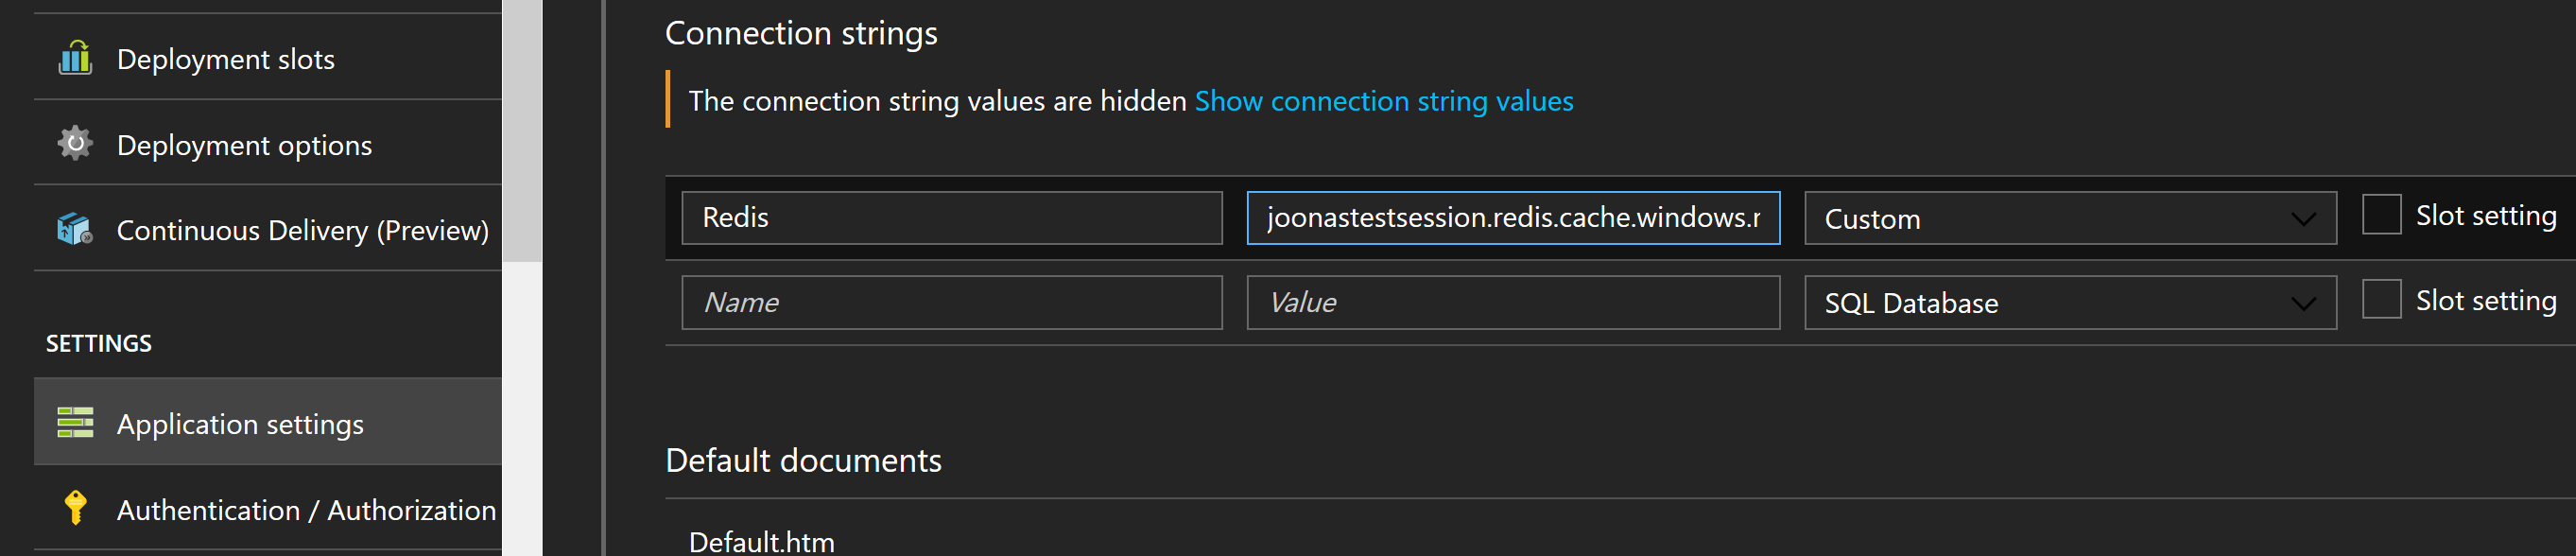 Connection string in Azure Web App configuration